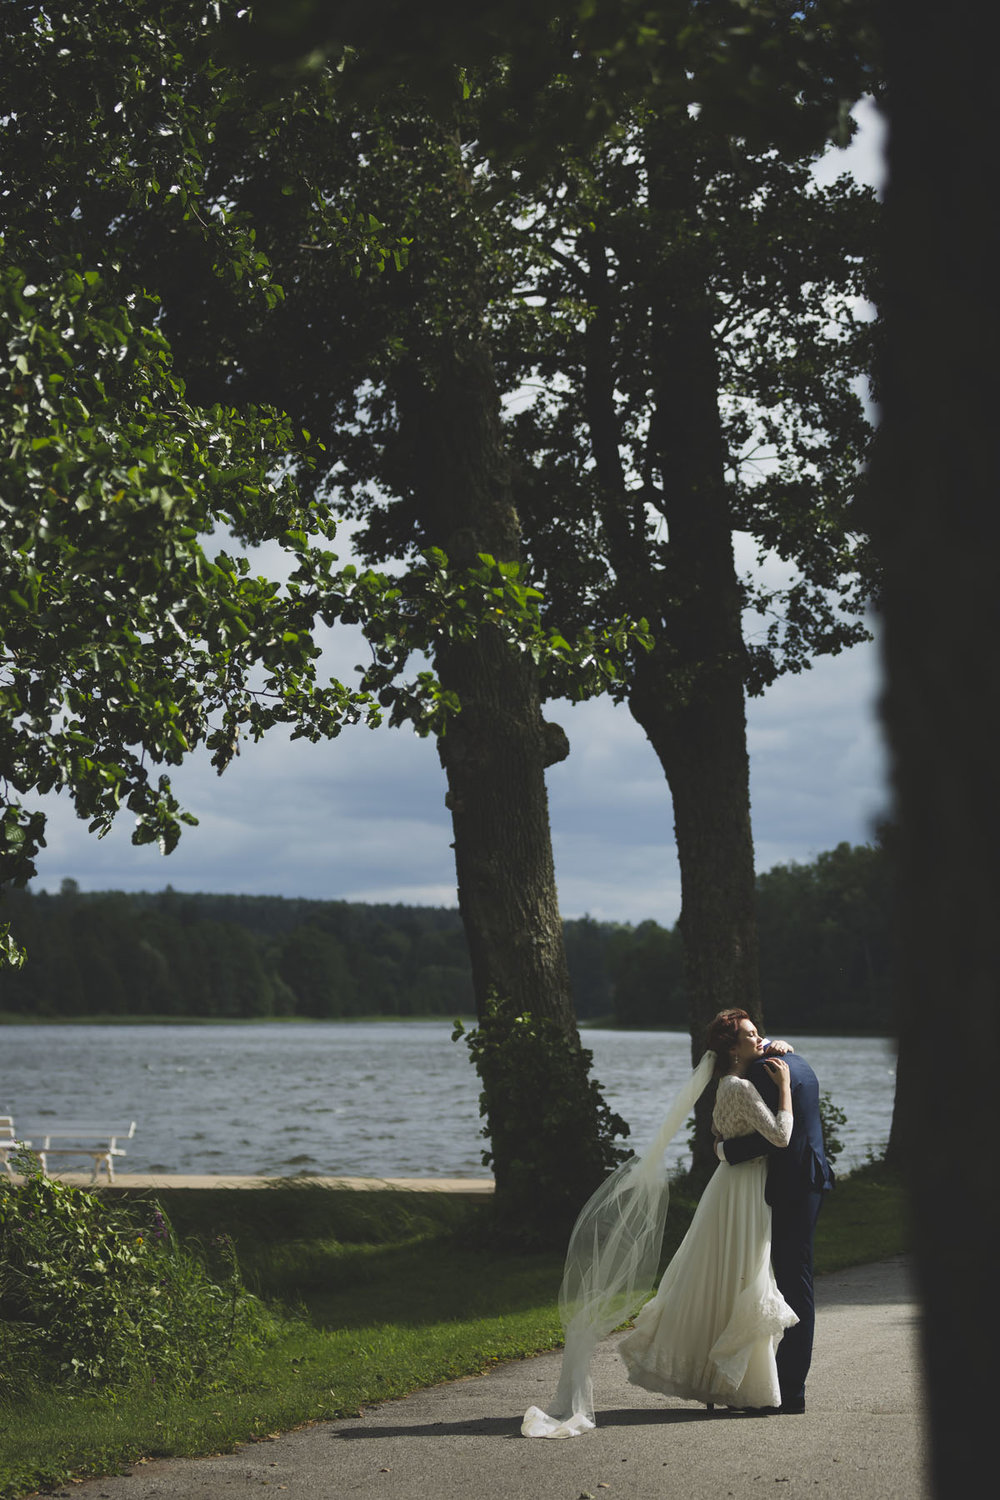 best-wedding-photos-104-wedding-in-estonia.jpg